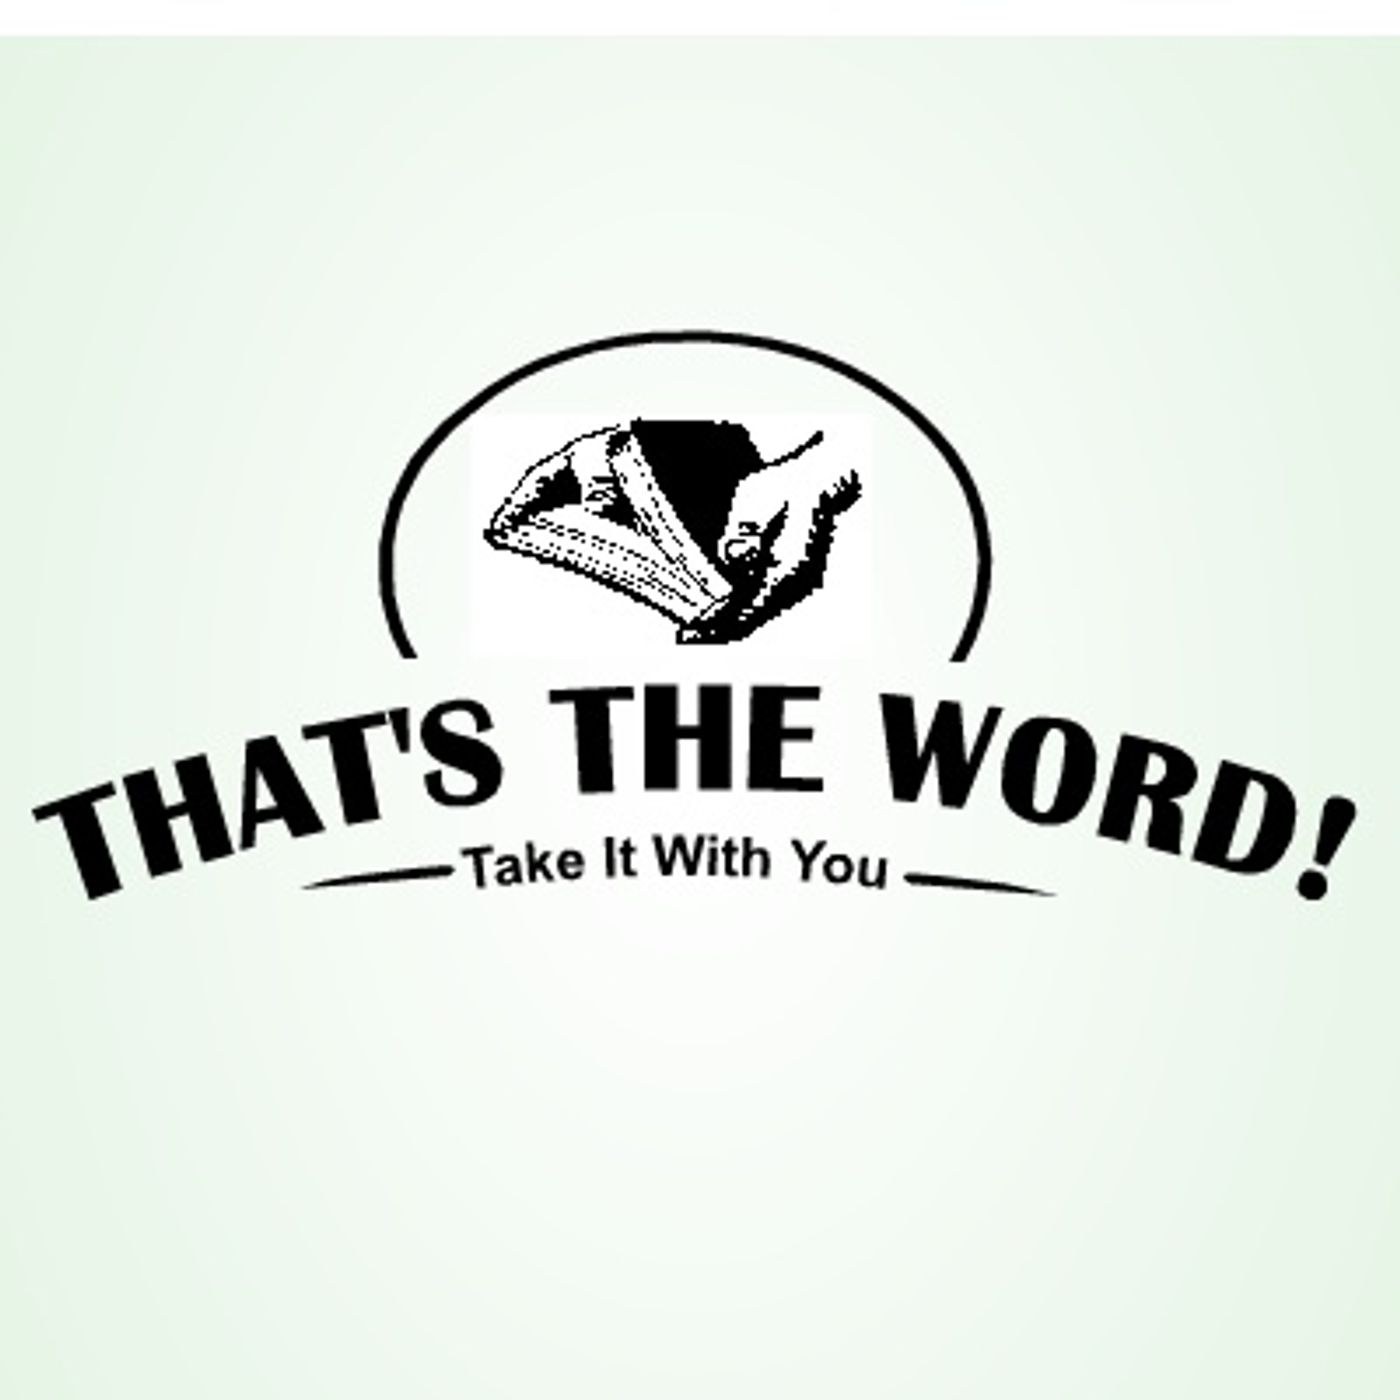 That's The Word!